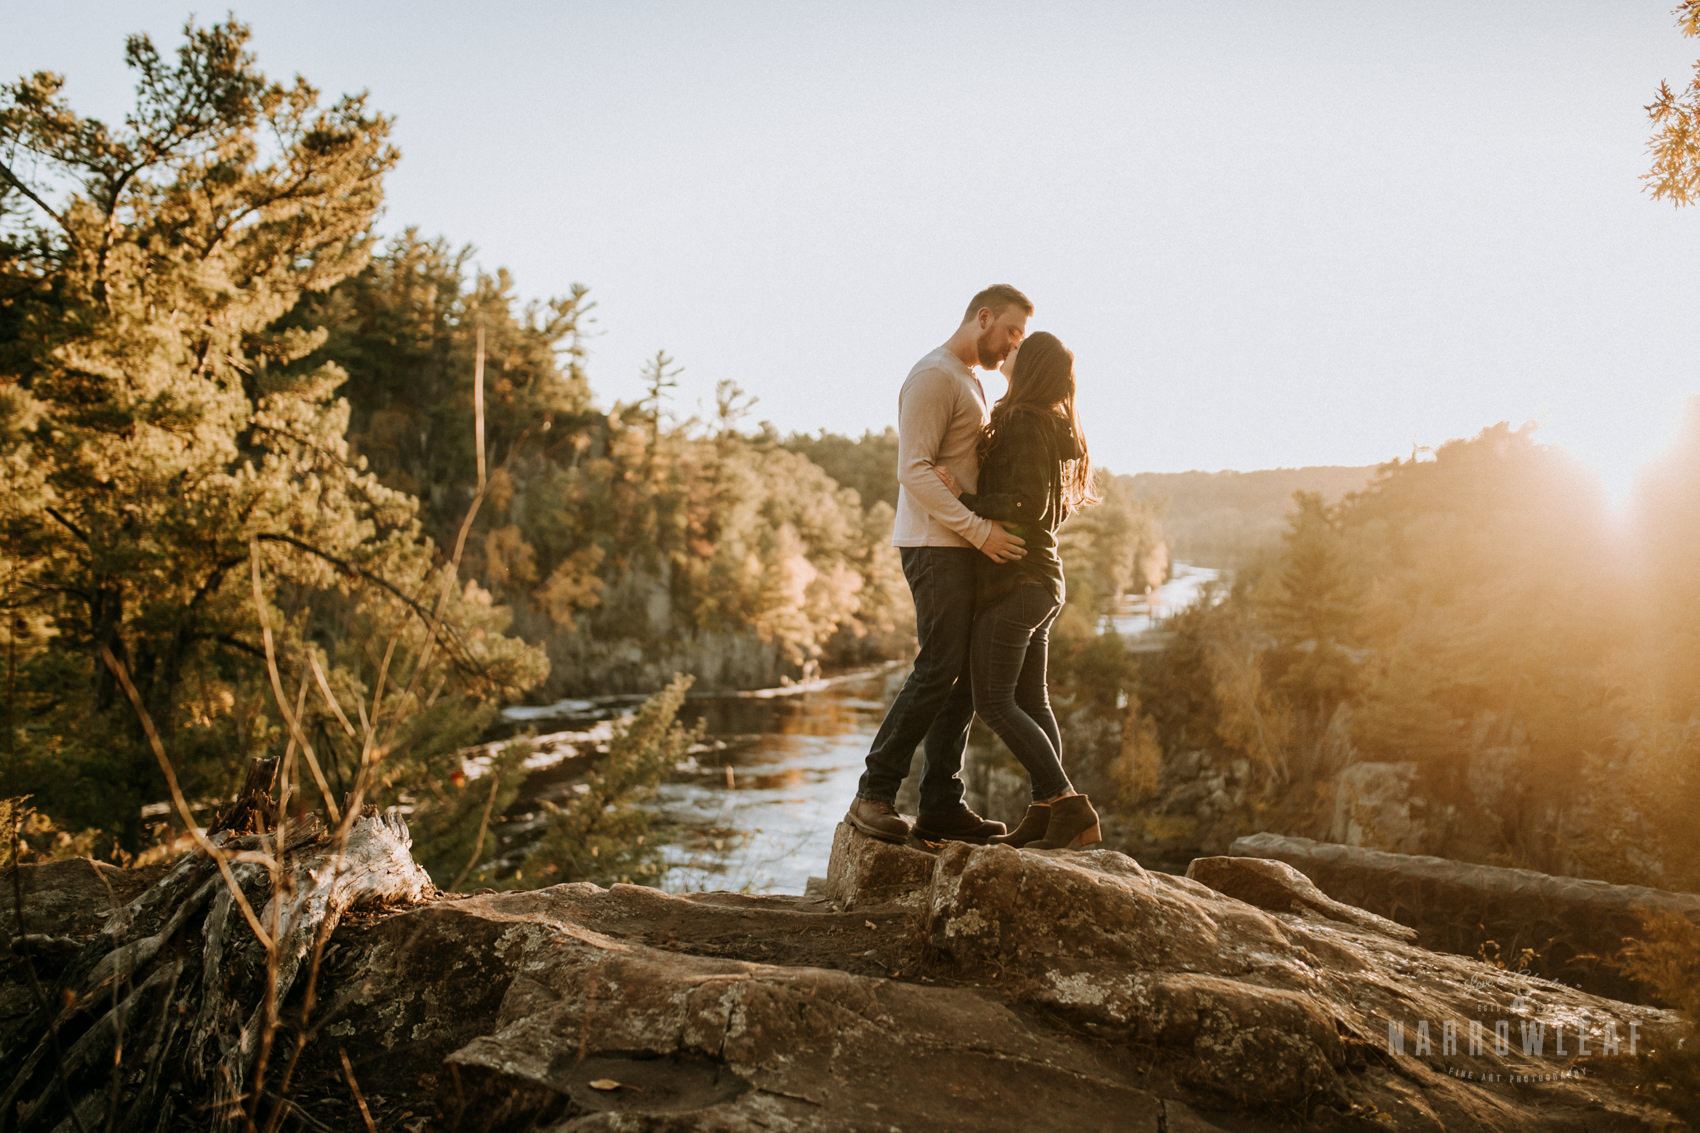 authentic-engagement-photos-in-the-bluffs-WI-interstate-park-Narrowleaf_Love_and_Adventure_Photography-8117.jpg